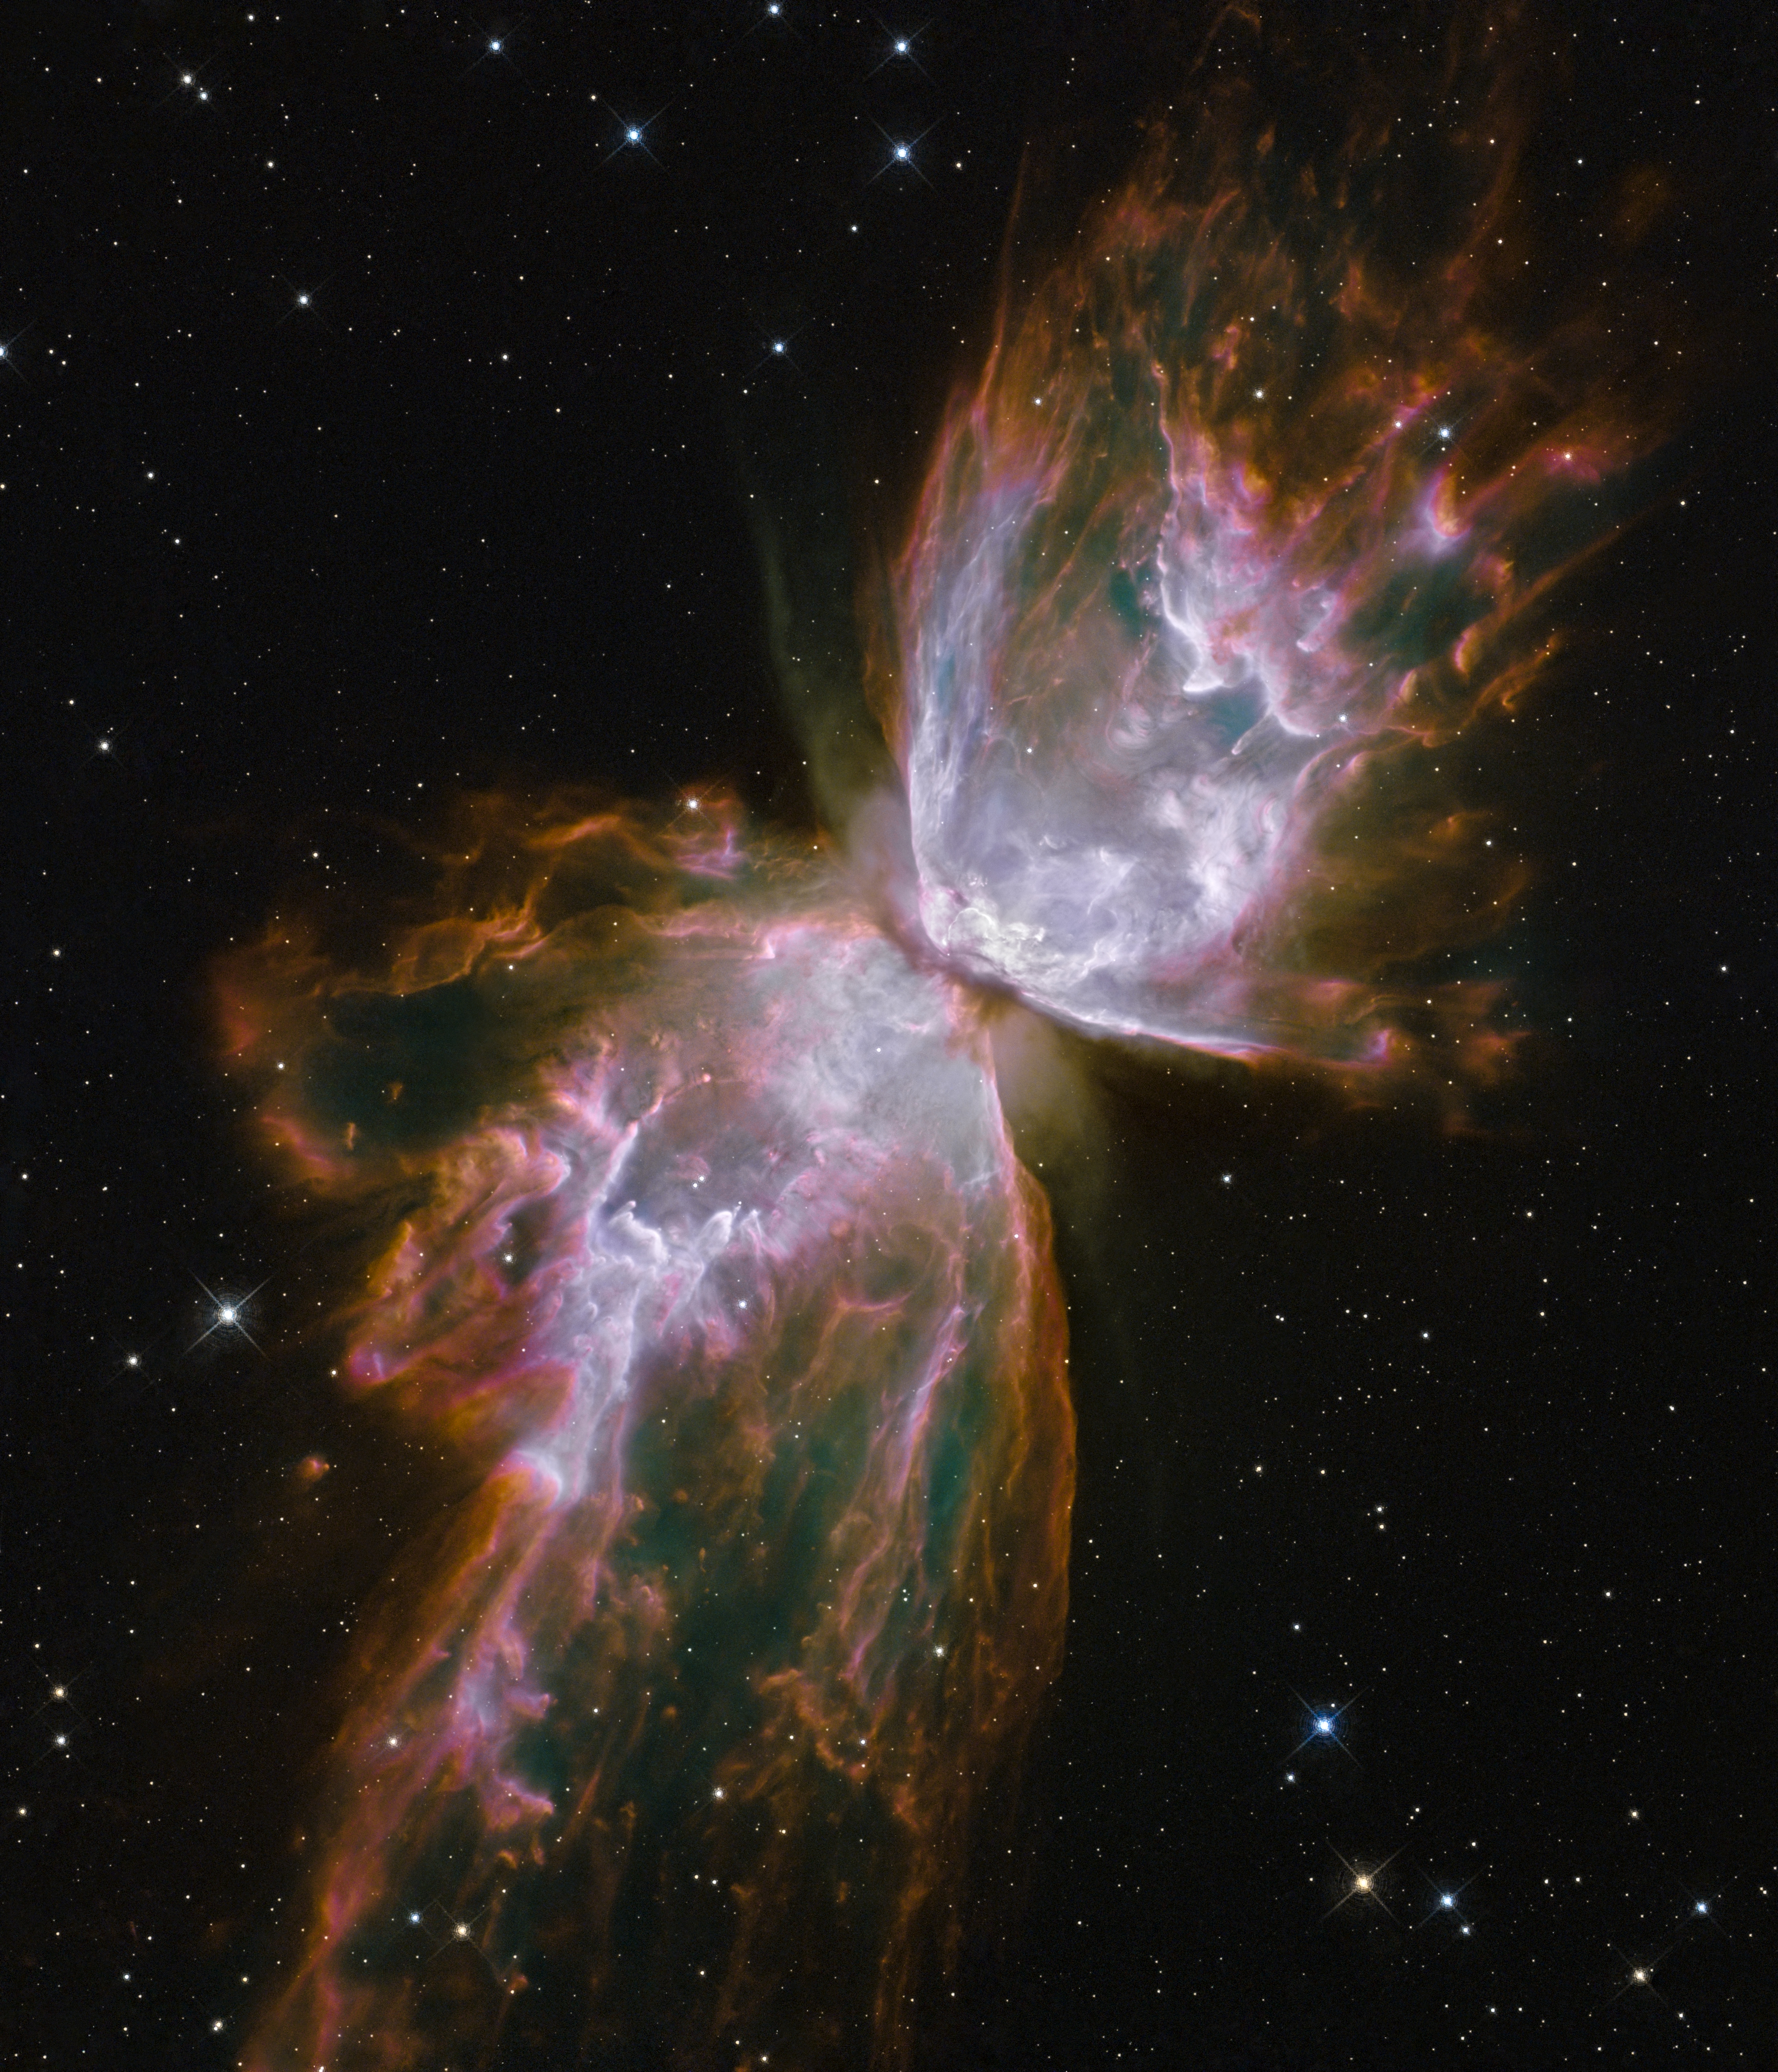 30 Best Space Pictures of the Week – Feb 21st to Feb 27th, 2013